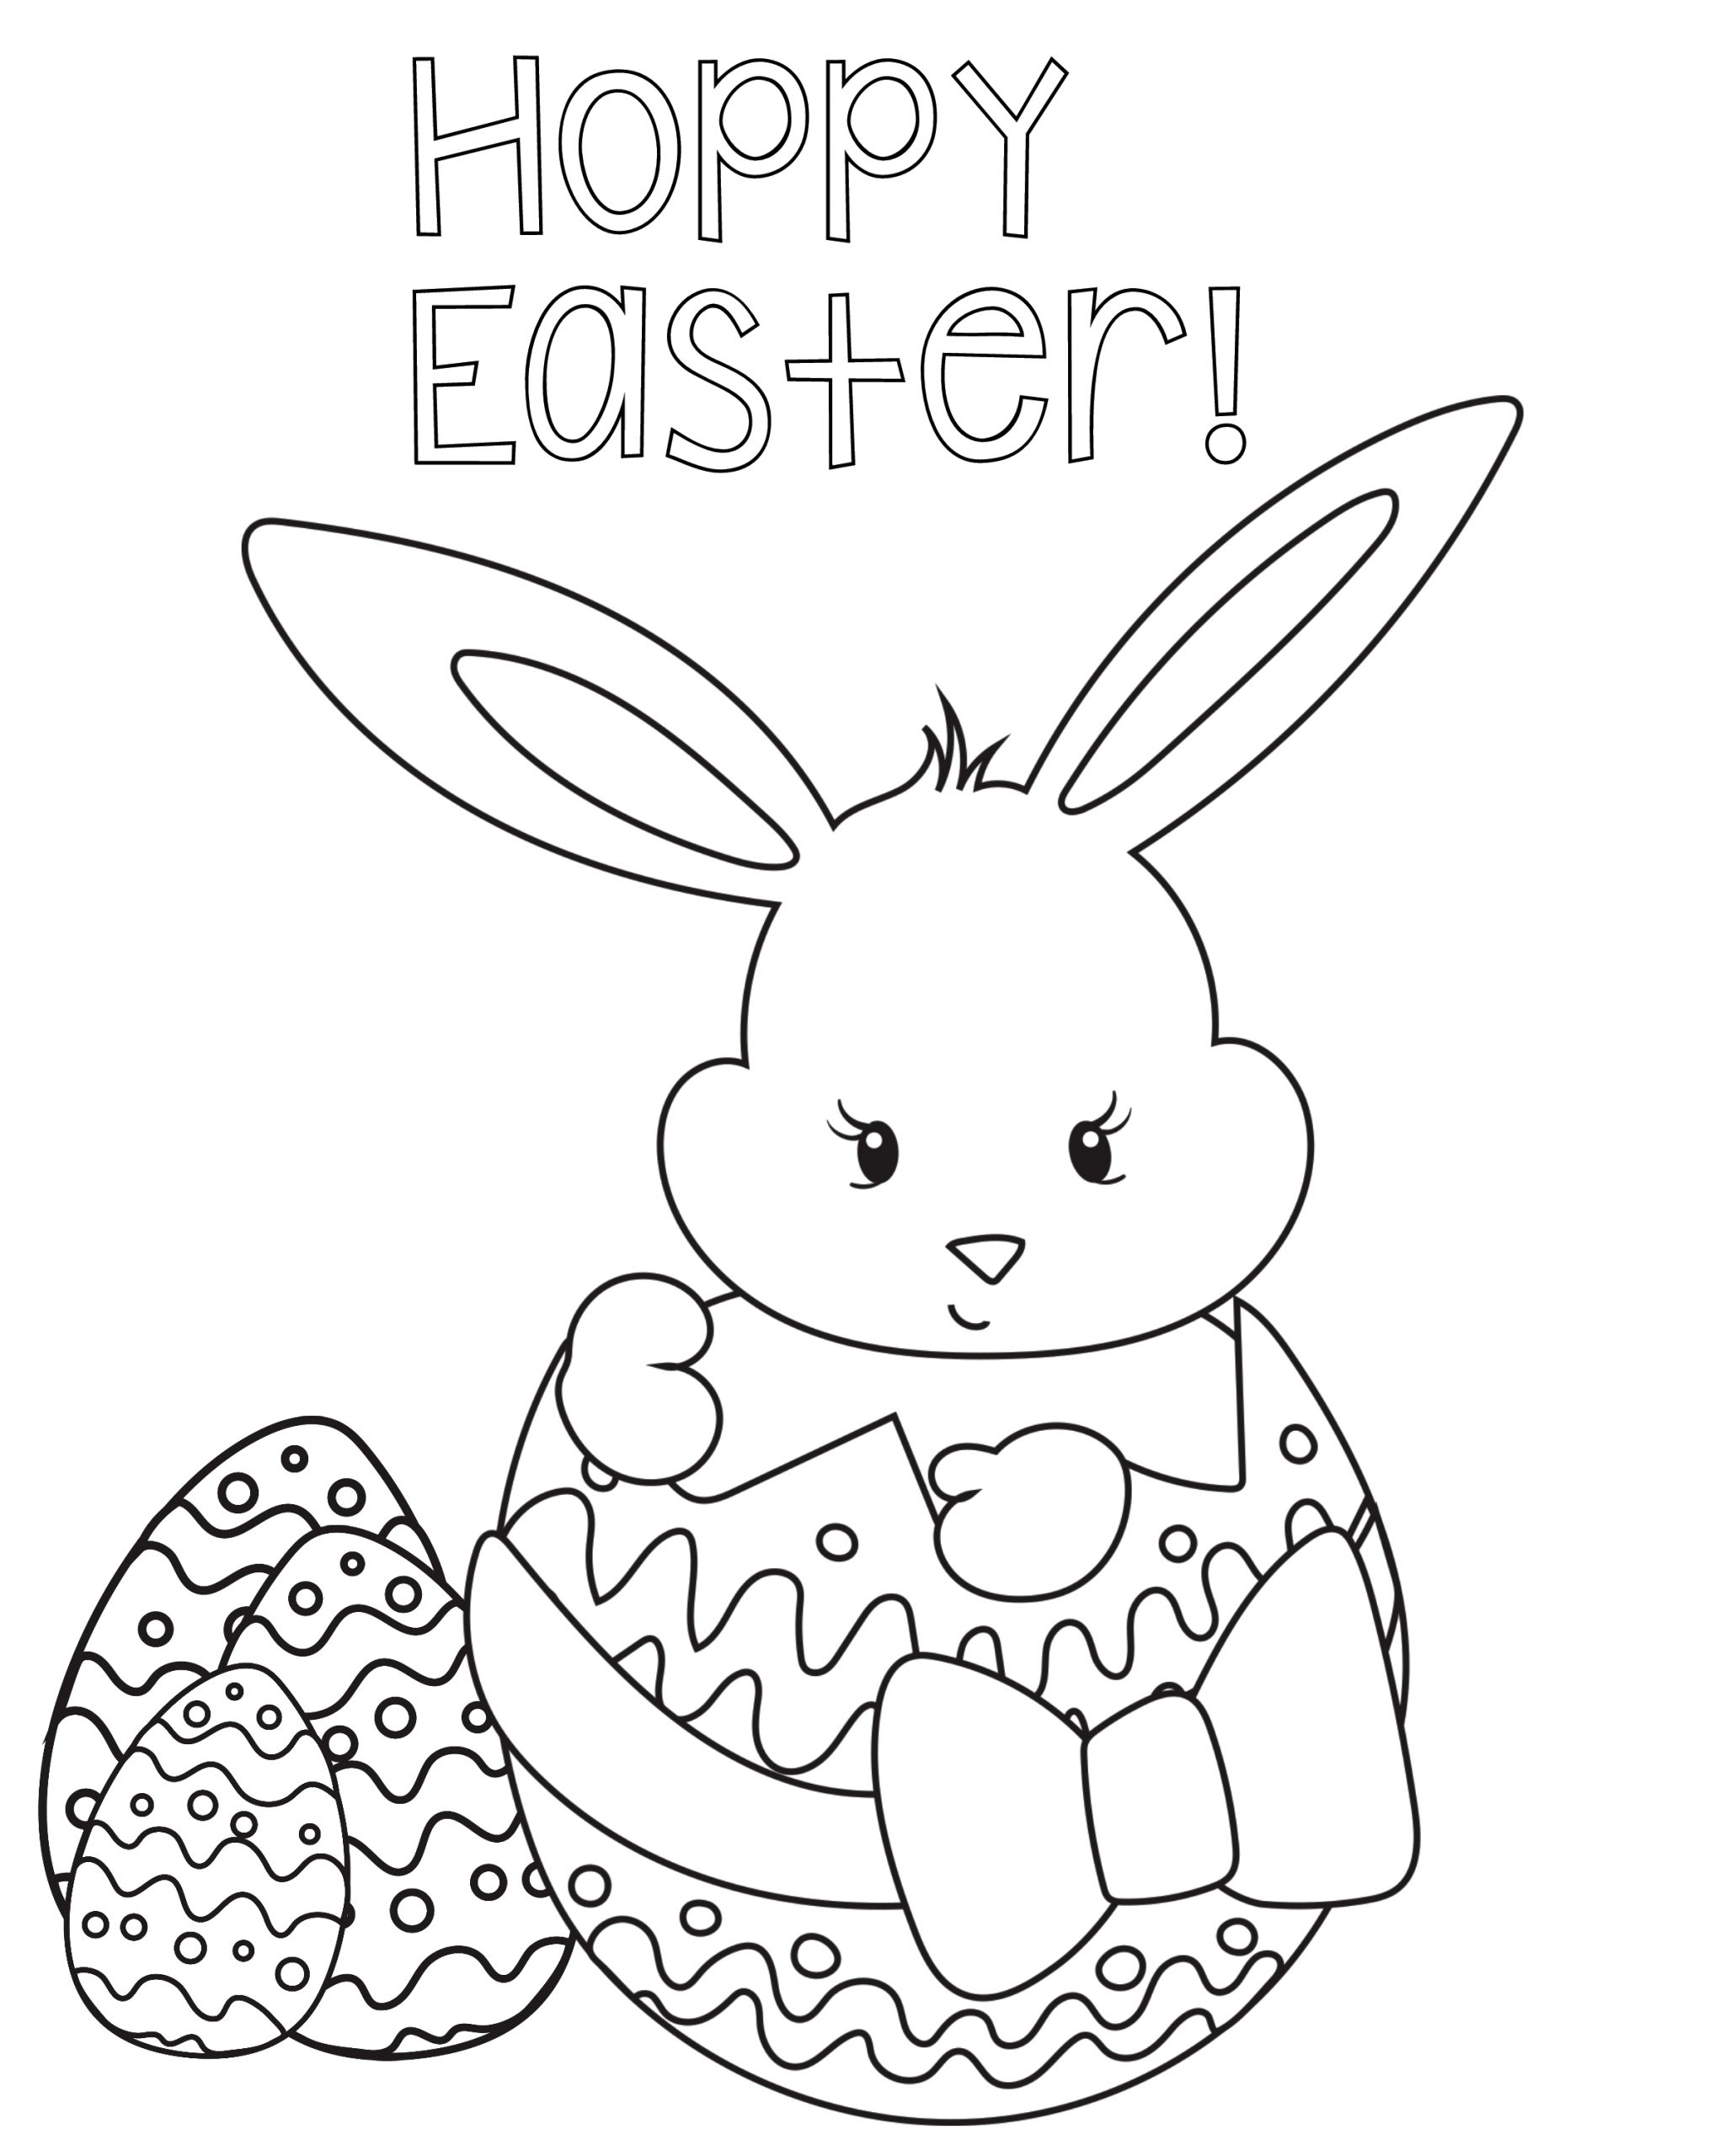 Easter Coloring Pages to Print for Free Happy Easter Coloring Pages Best Coloring Pages for Kids